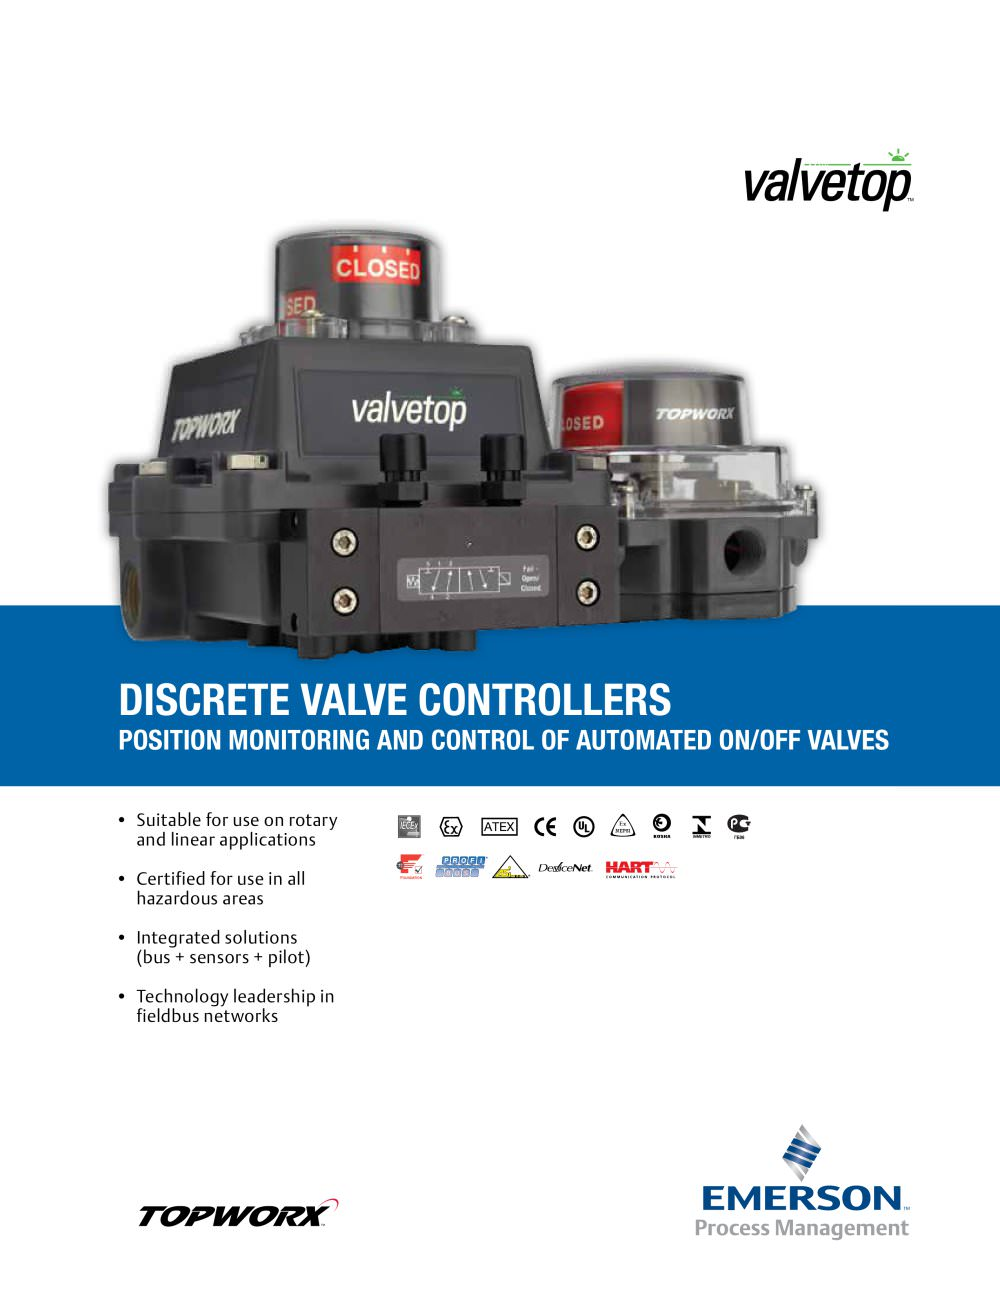 valvetop product brochure 555487_1b valvetop product brochure topworx pdf catalogue technical topworx limit switch wiring diagram at nearapp.co